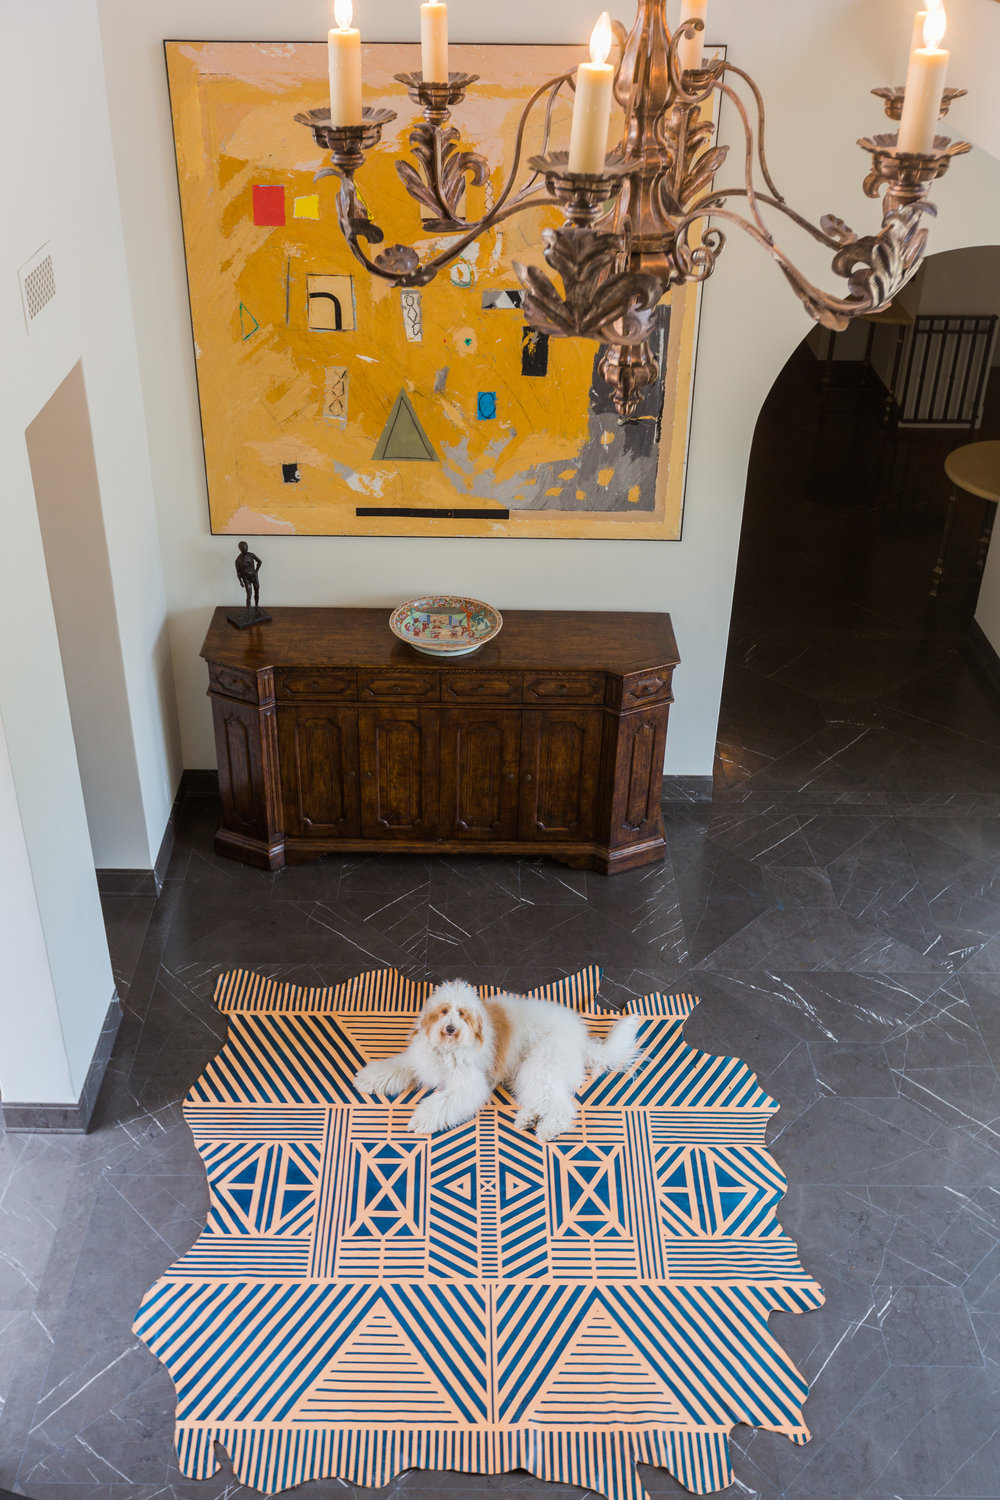 Item Full Cowhide Rug | Pattern Chi Chi | Color Indigo on natural| Image from SDK Photo